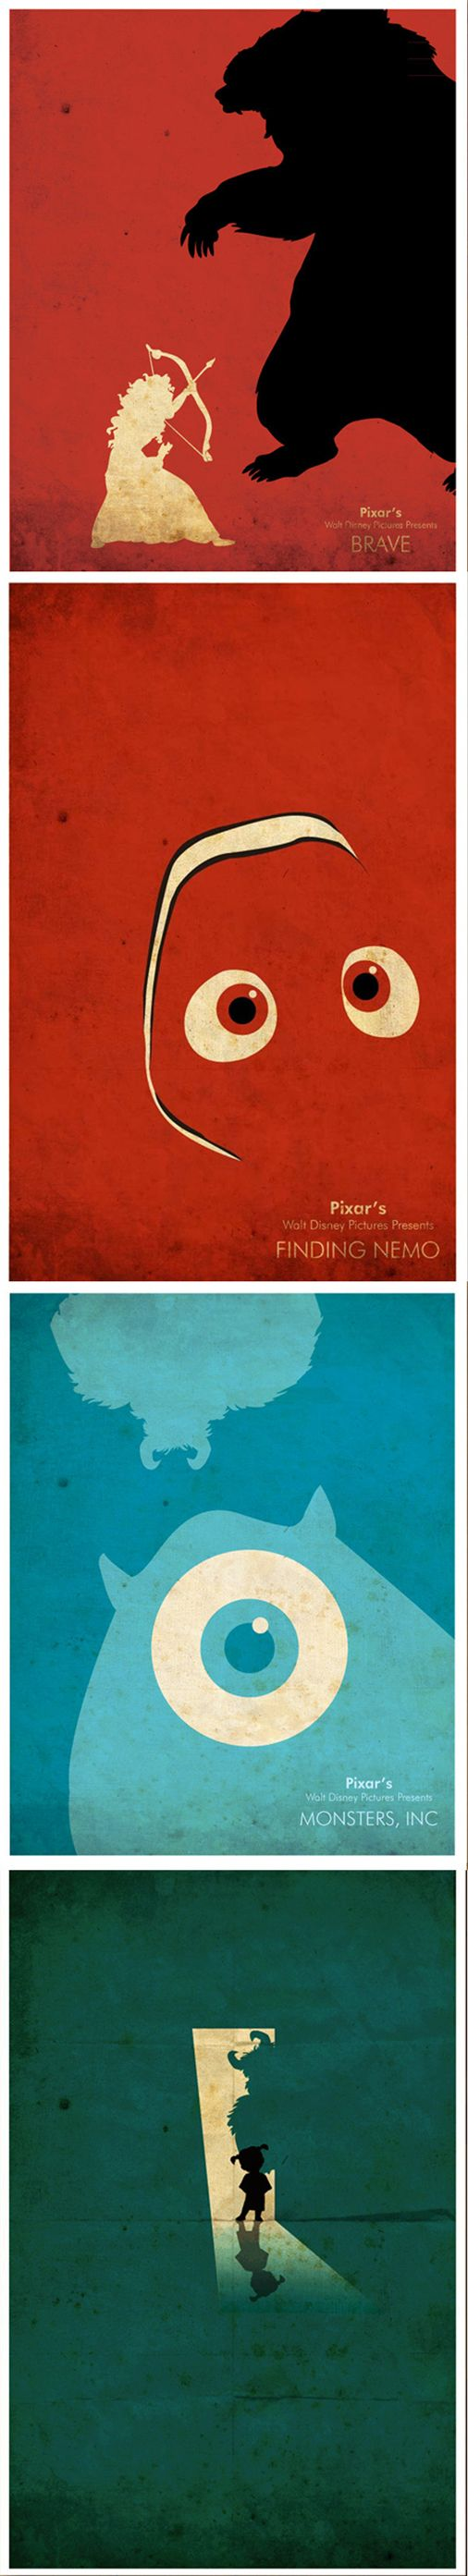 Creative Disney Posters by Edmond. Want to print these and hang them all around my room